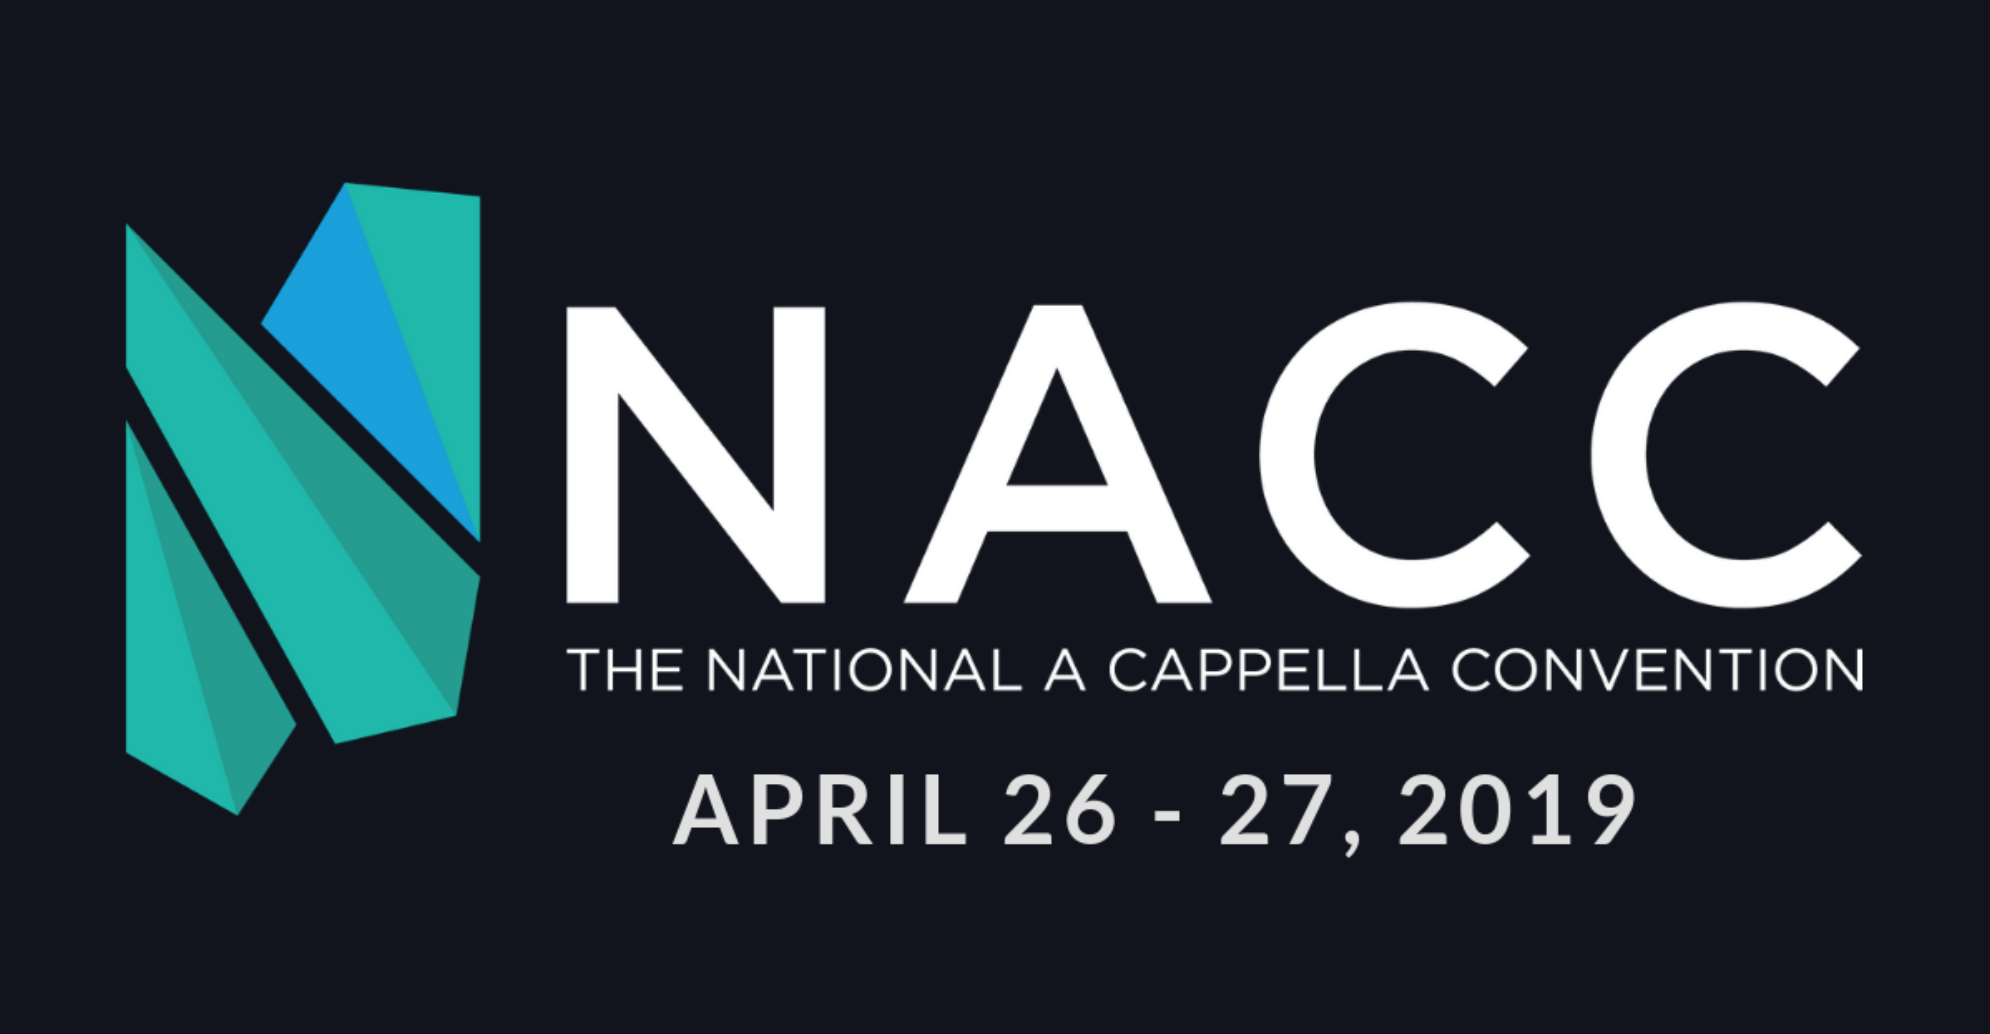 NACC 2019 - We are so excited to announce that we will be headlining performing in Memphis this April at the National A Cappella Convention! We can't wait to share the stage with so many other talented vocal groups, including RESOUND and OneVoice! For tickets and more information visit acappellaconvention.com